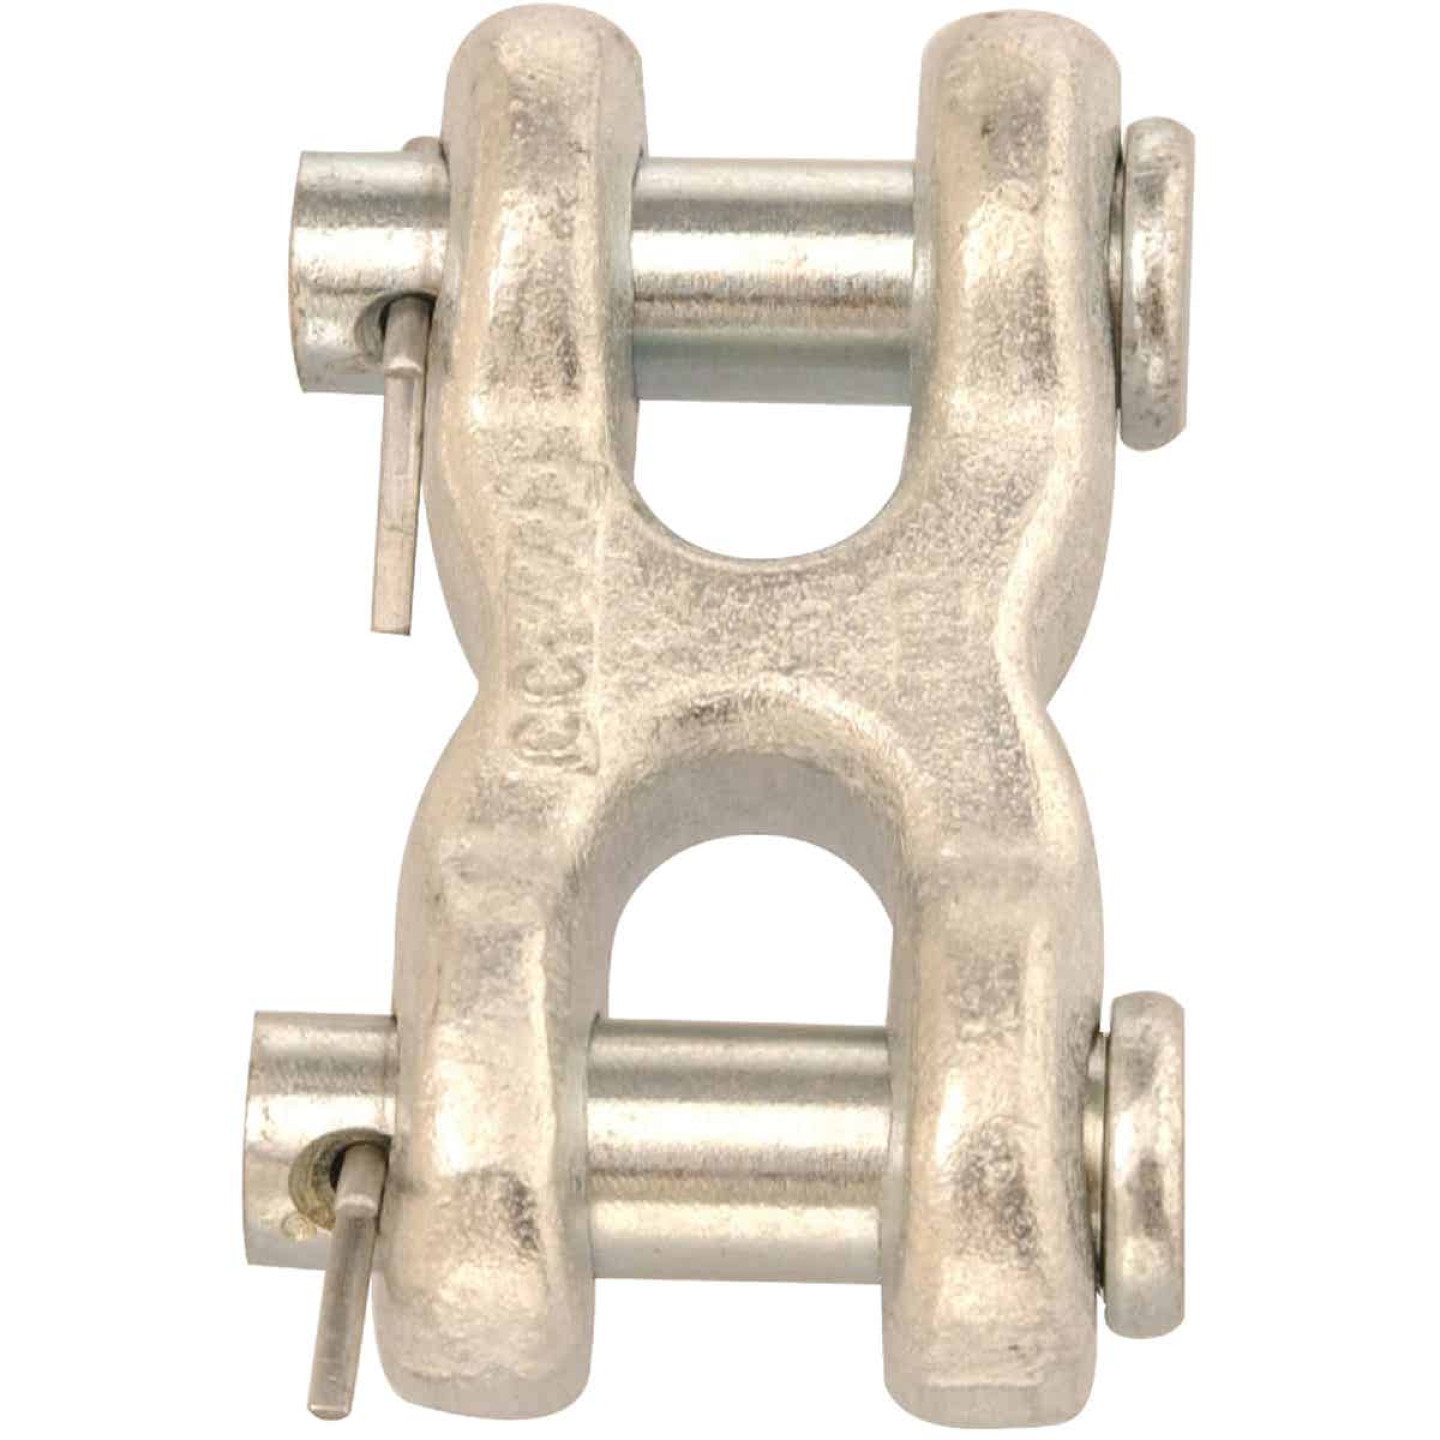 Campbell 3/8 In. Zinc-Plated Forged Steel Double Clevis Mid Link Image 1